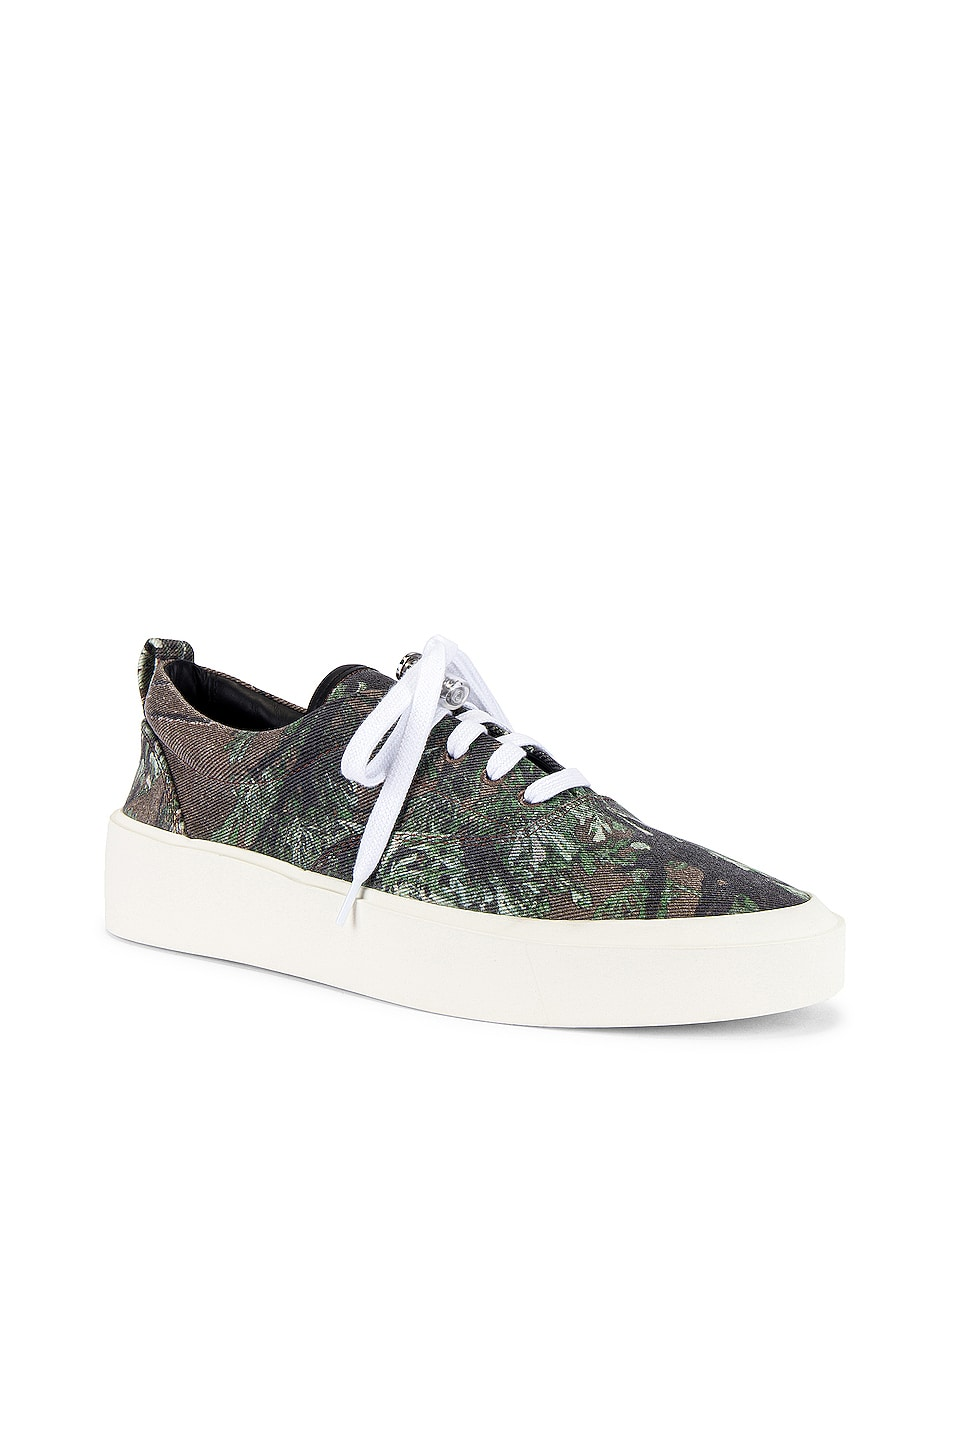 Image 1 of Fear of God 101 Lace Up Sneaker in Dark Prairie Ghost Camo